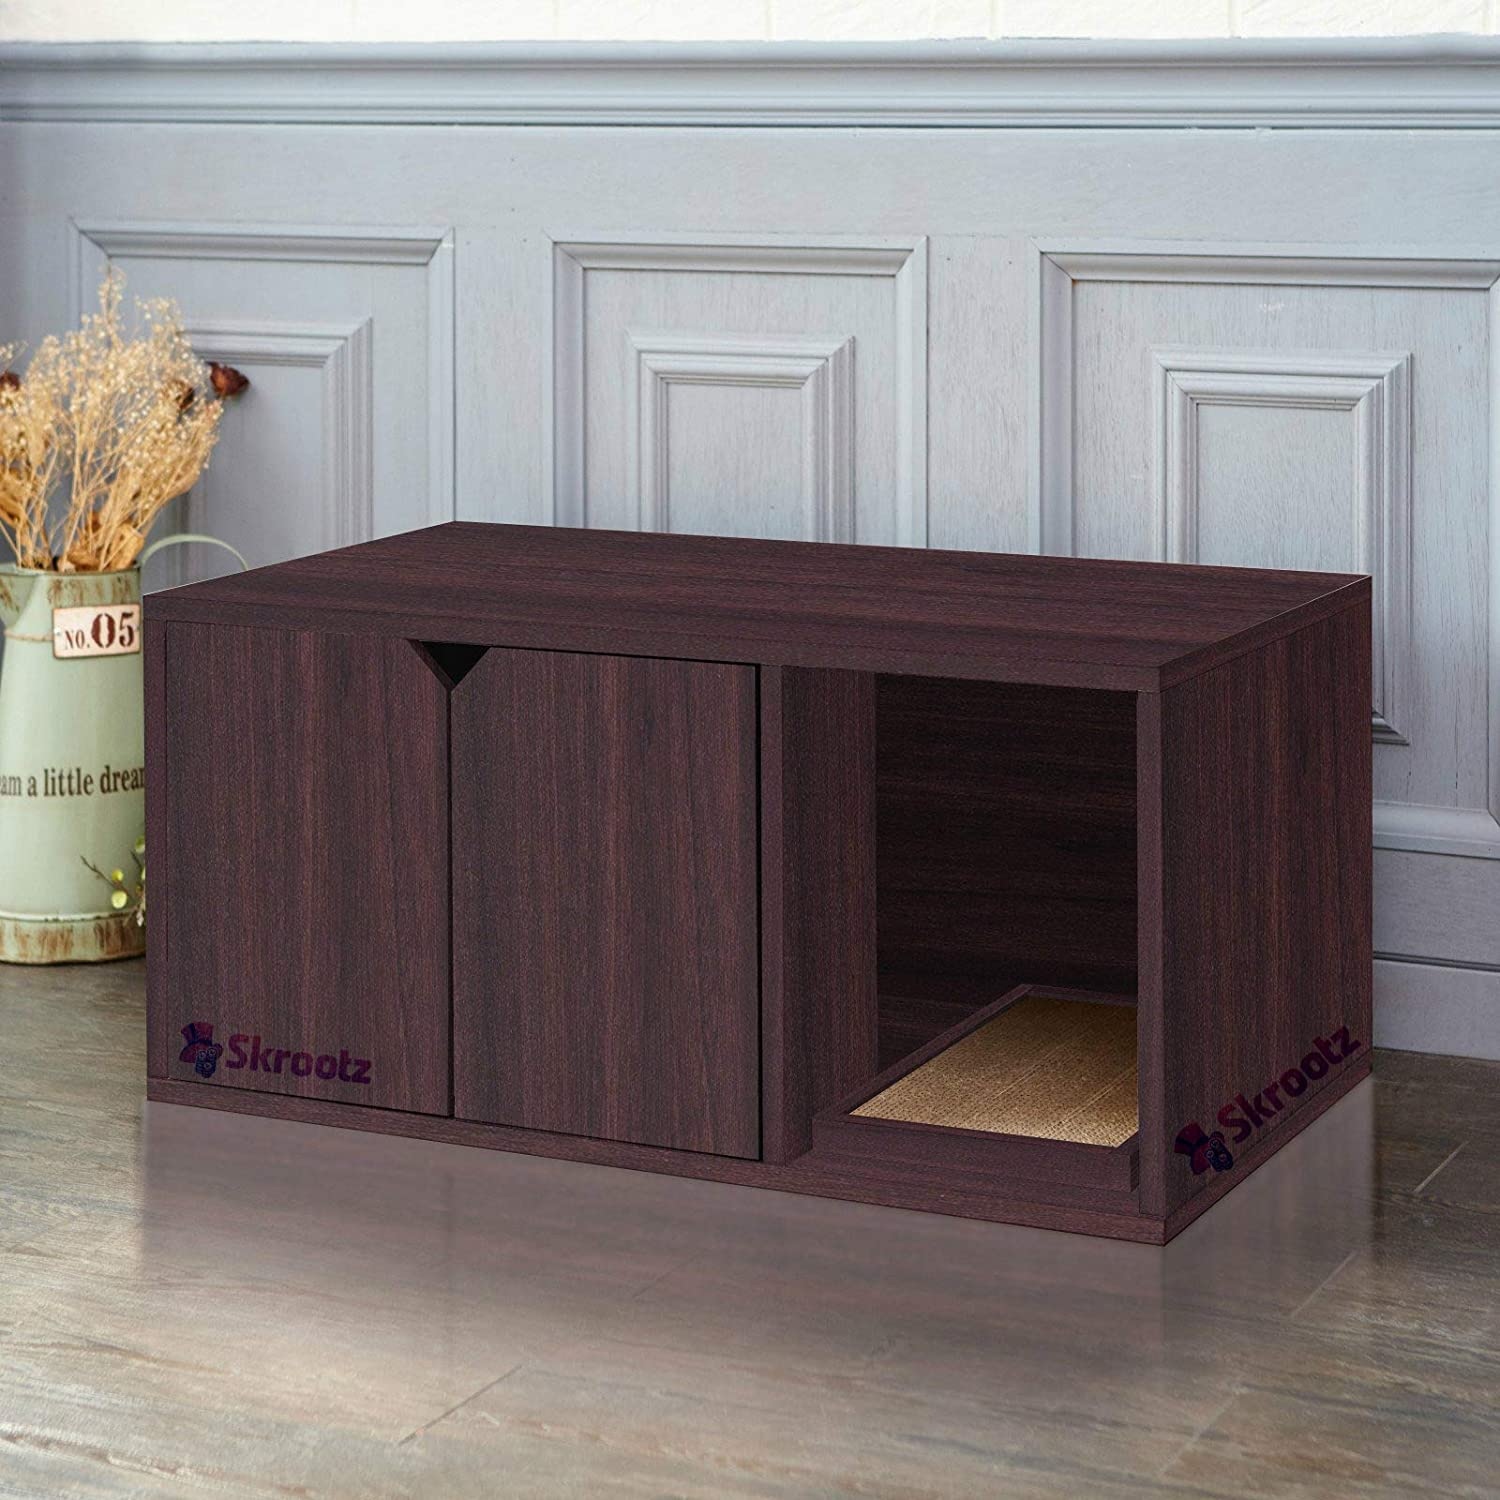 Enclosed Cat Litter Box Furniture Espresso